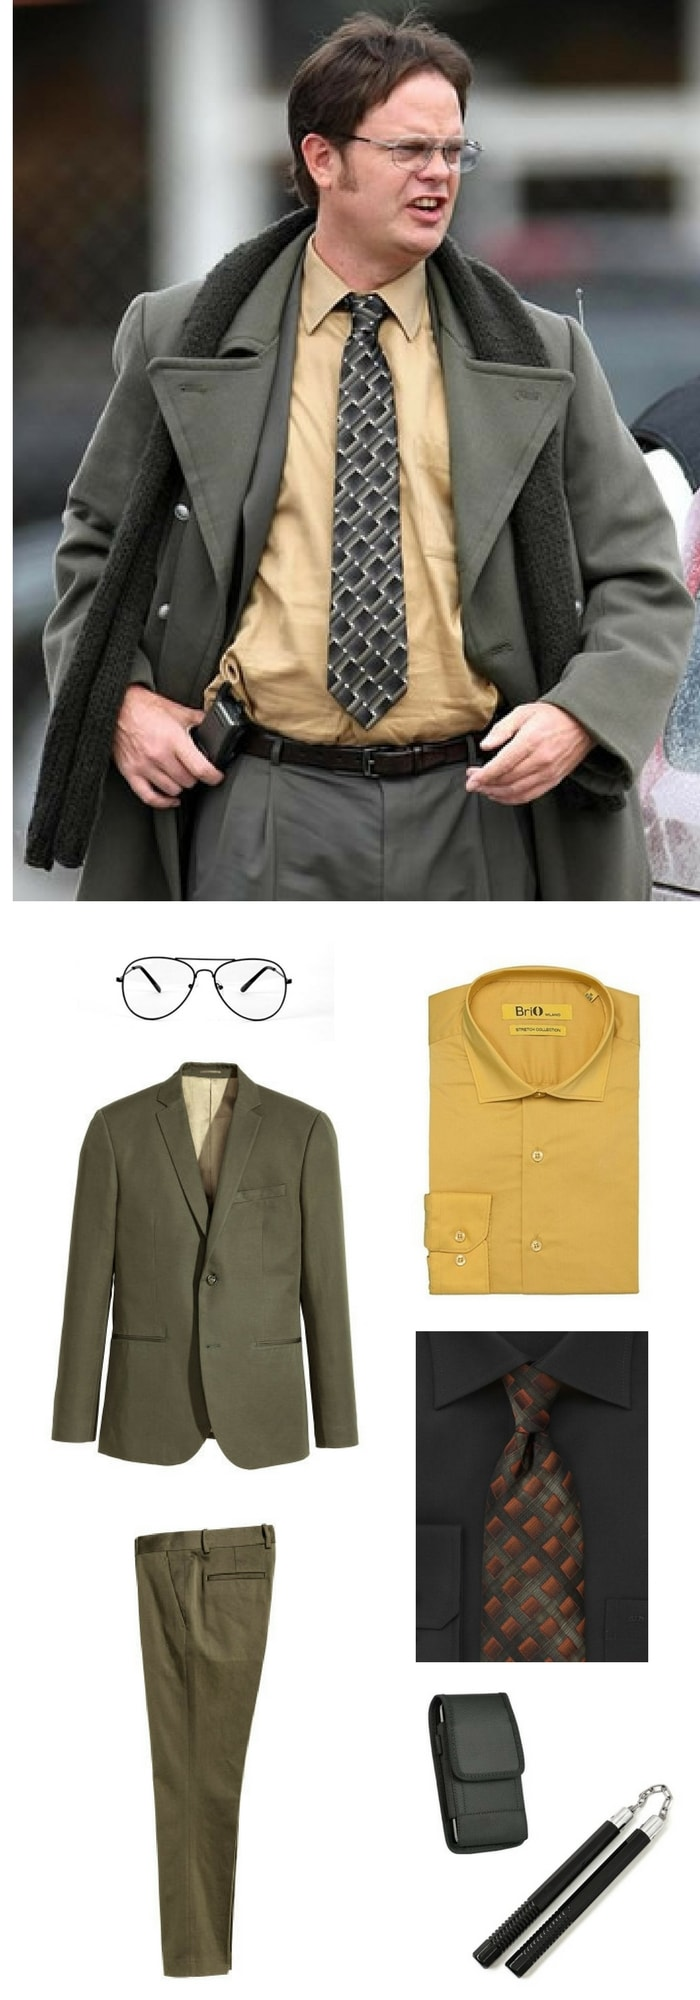 Halloween Costume Guide For The Office Characters News